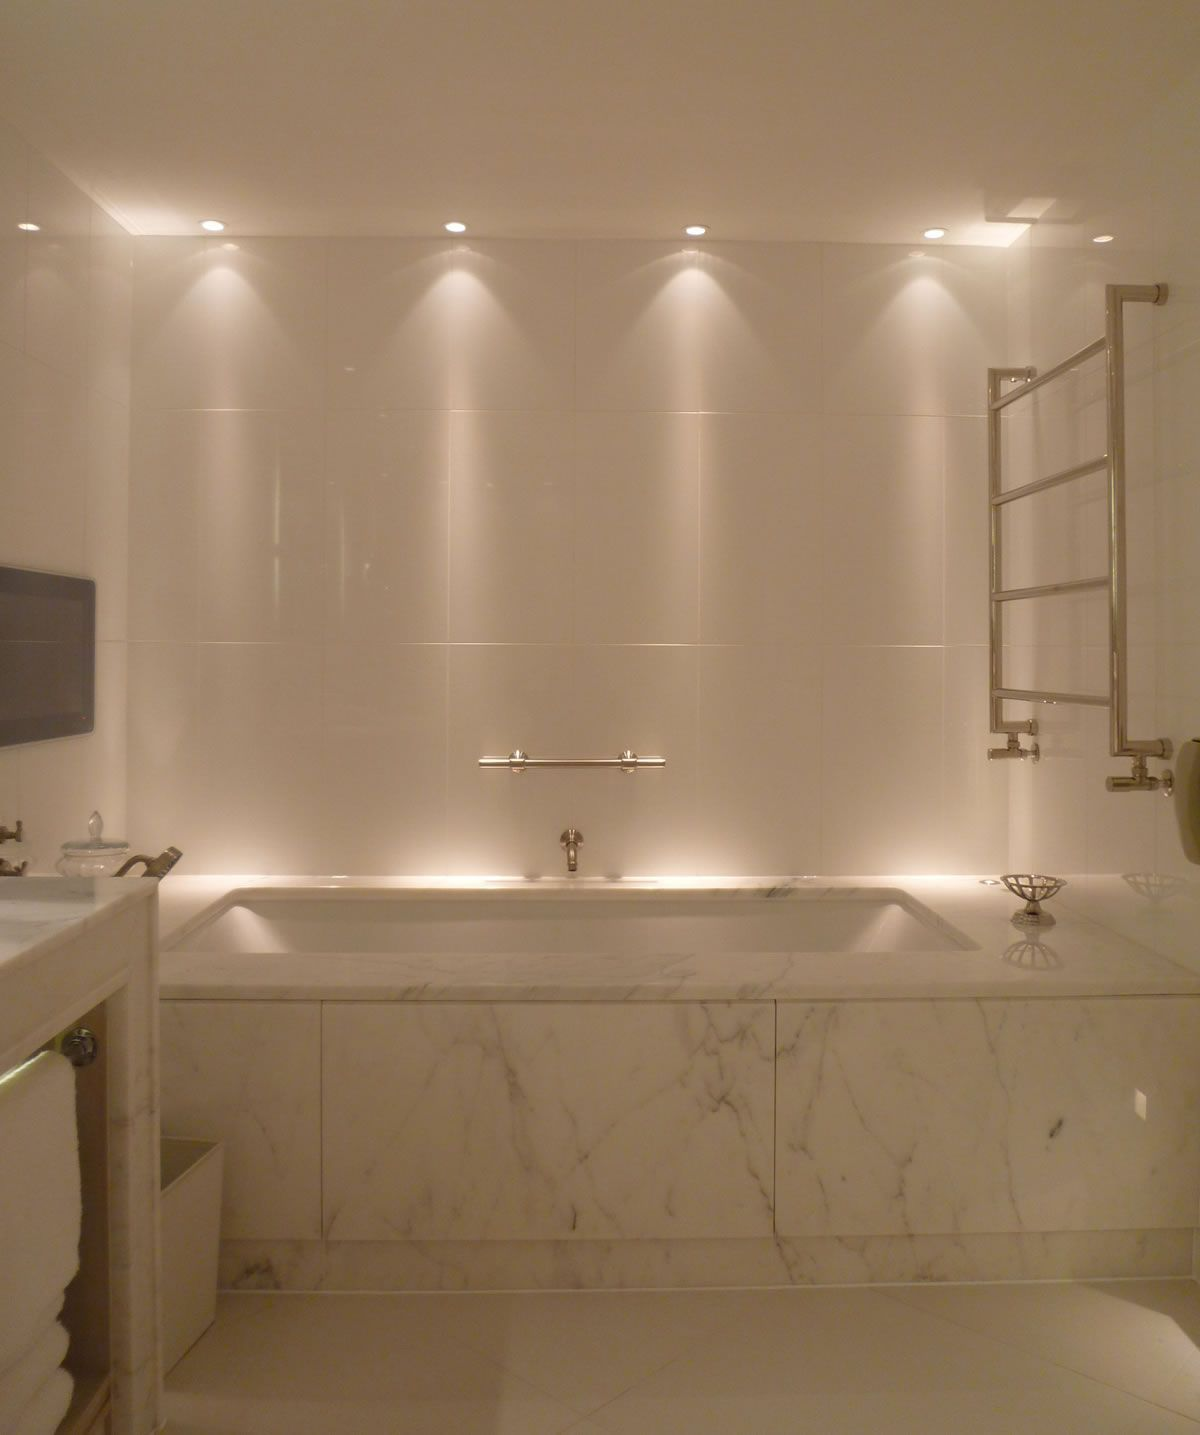 13 Dreamy Bathroom Lighting Ideas: Bathroom Lighting Design